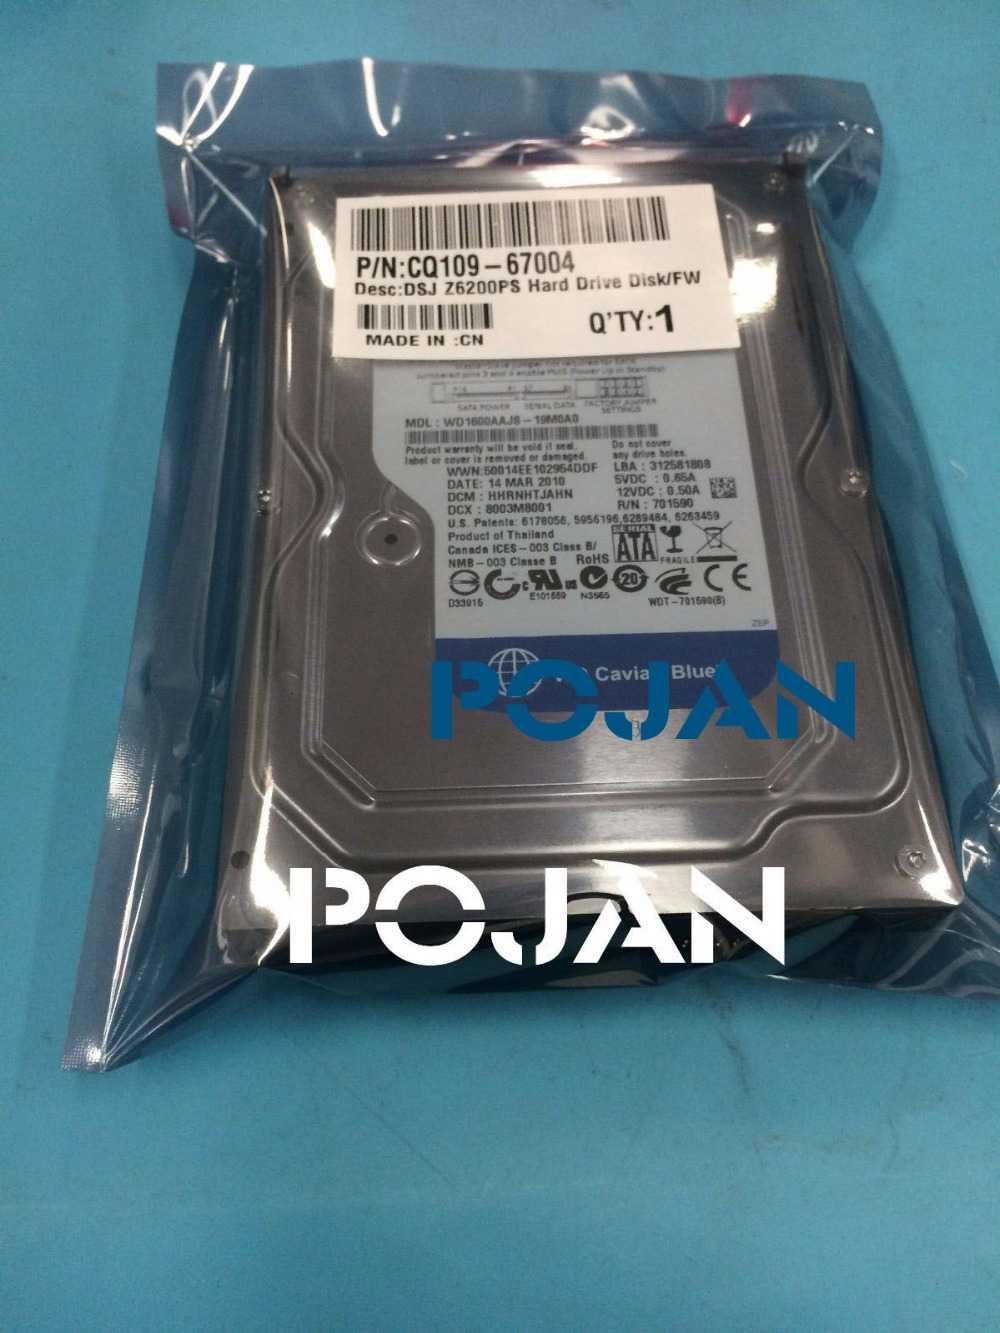 SATA HDD Hard Drive Disk for  Designjet Z6200  Sata HDD With FW CQ109-67015 CQ109 CQ111  ink plotter parts